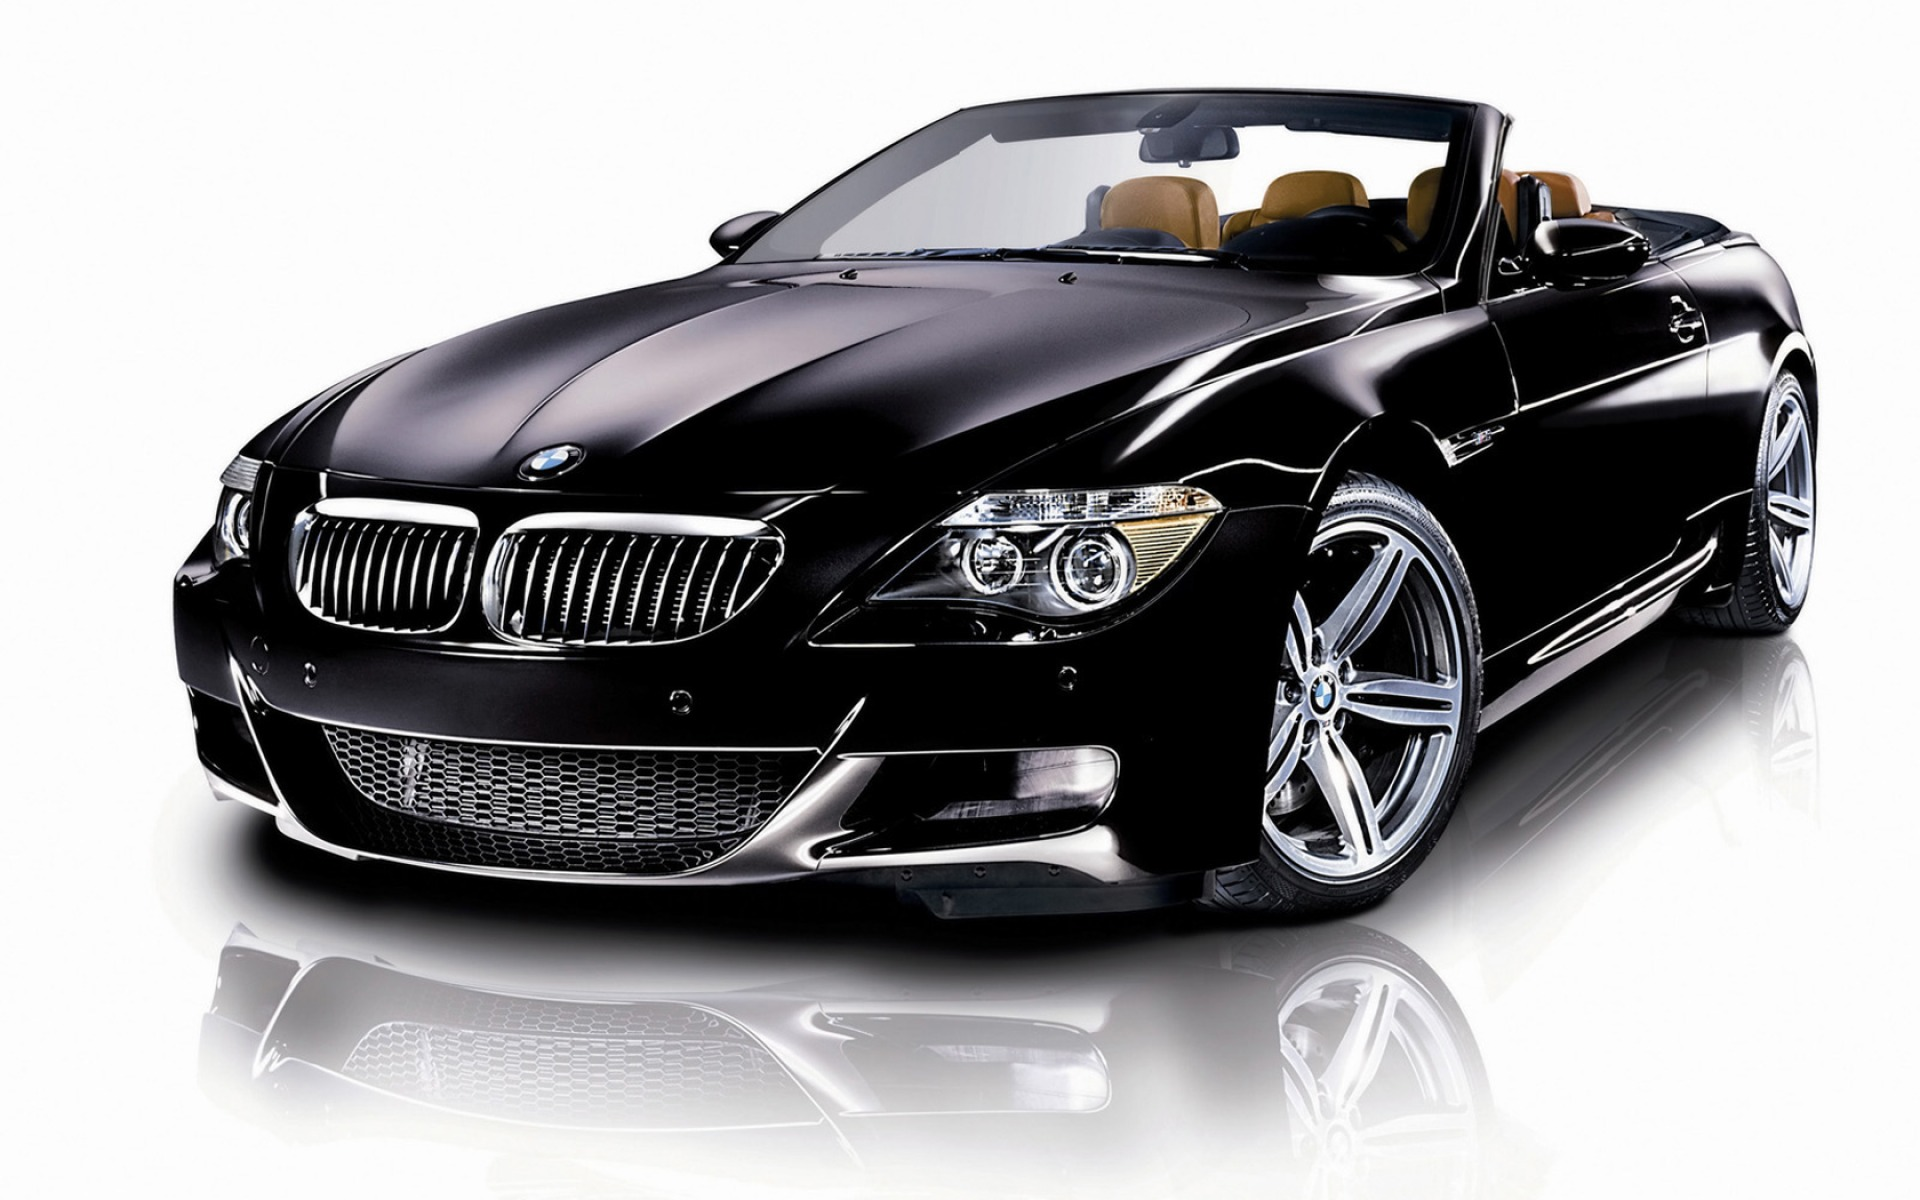 Ultrablogus  Prepossessing Bmw Car Wallpaper Wallpapers For Free Download About   With Remarkable Bmw M Convertible Wallpaper Bmw Cars With Delightful Santa Fe  Interior Also  Ford Contour Interior In Addition Best Way To Detail Interior Of Car And Pontiac G  Interior As Well As Ford Fusion Interior  Additionally  Chrysler  Srt Red Interior From Allfreedownloadcom With Ultrablogus  Remarkable Bmw Car Wallpaper Wallpapers For Free Download About   With Delightful Bmw M Convertible Wallpaper Bmw Cars And Prepossessing Santa Fe  Interior Also  Ford Contour Interior In Addition Best Way To Detail Interior Of Car From Allfreedownloadcom